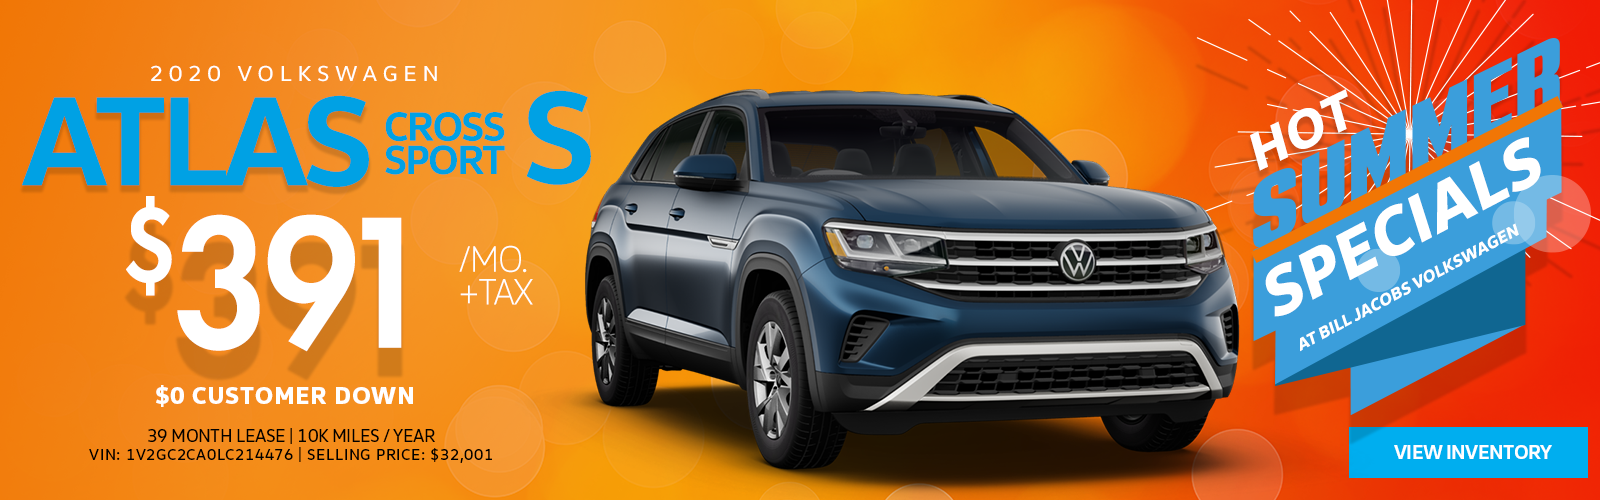 Lease a 2020 Atlas Cross Sport S for $391/mo.